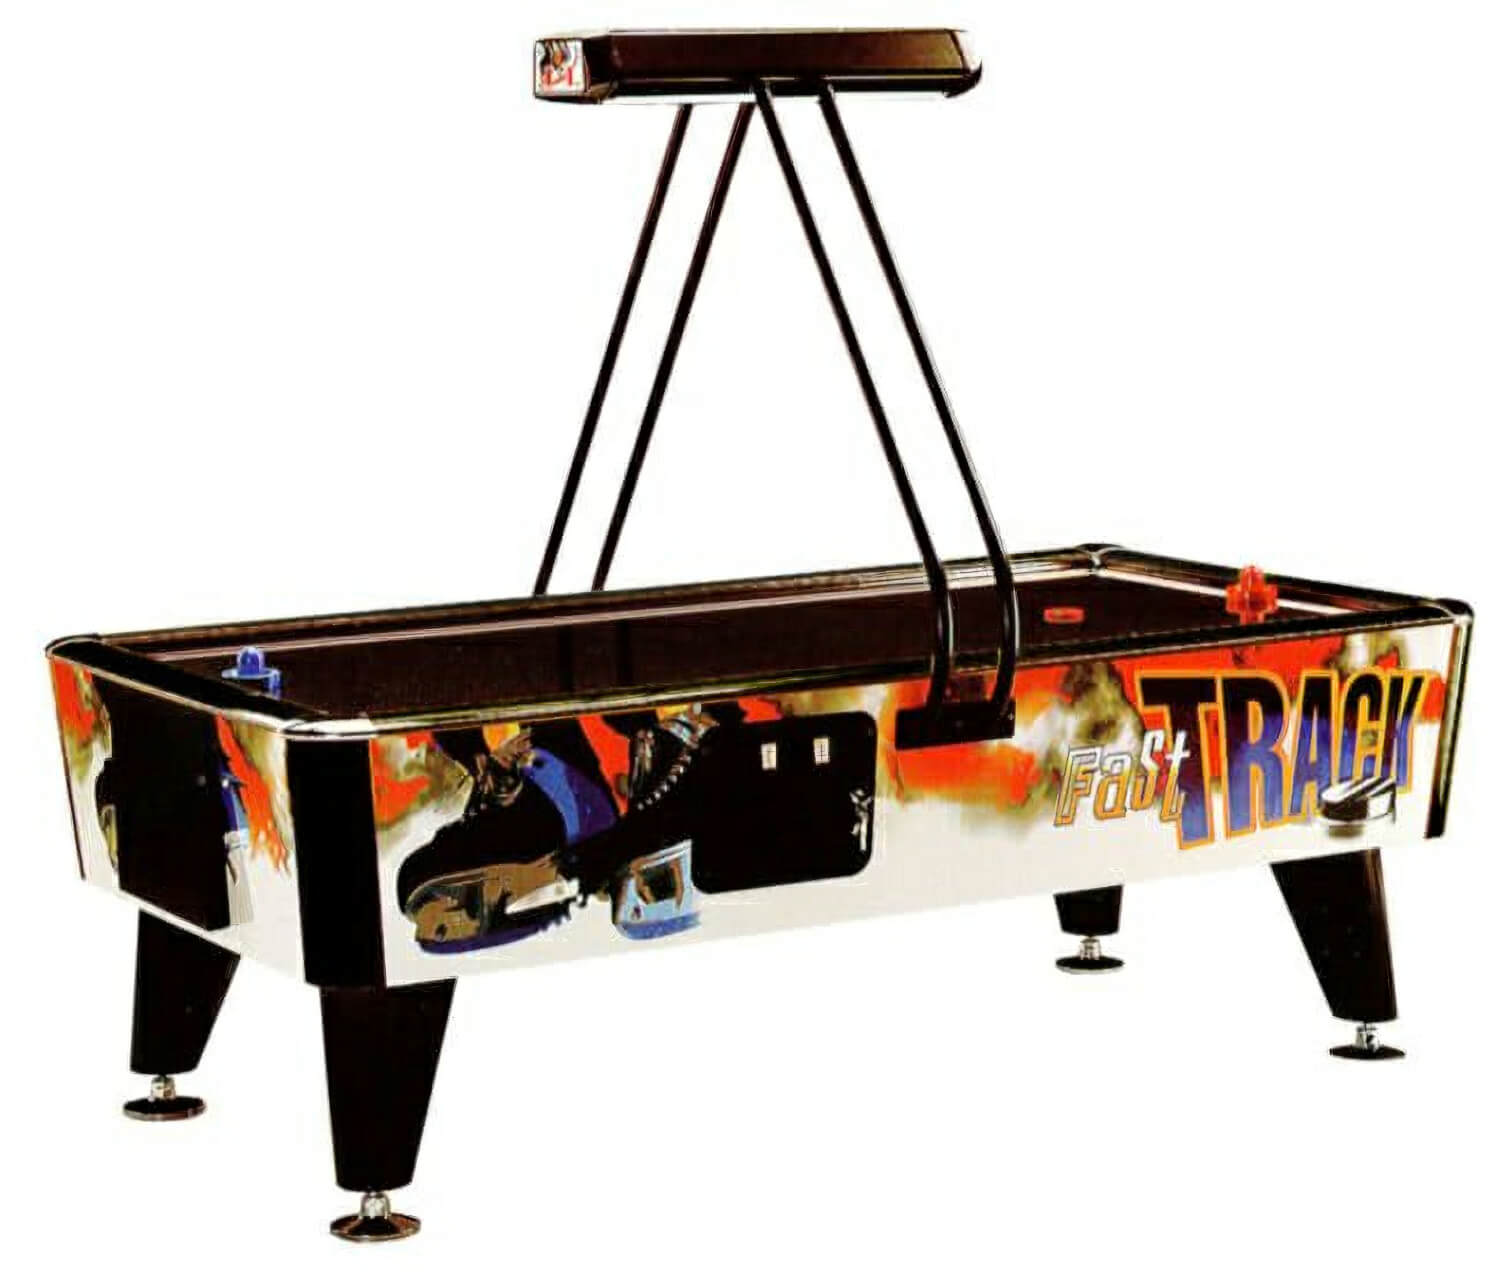 Reconditioned Fast Track Mk1 8ft Commercial Air Hockey Table